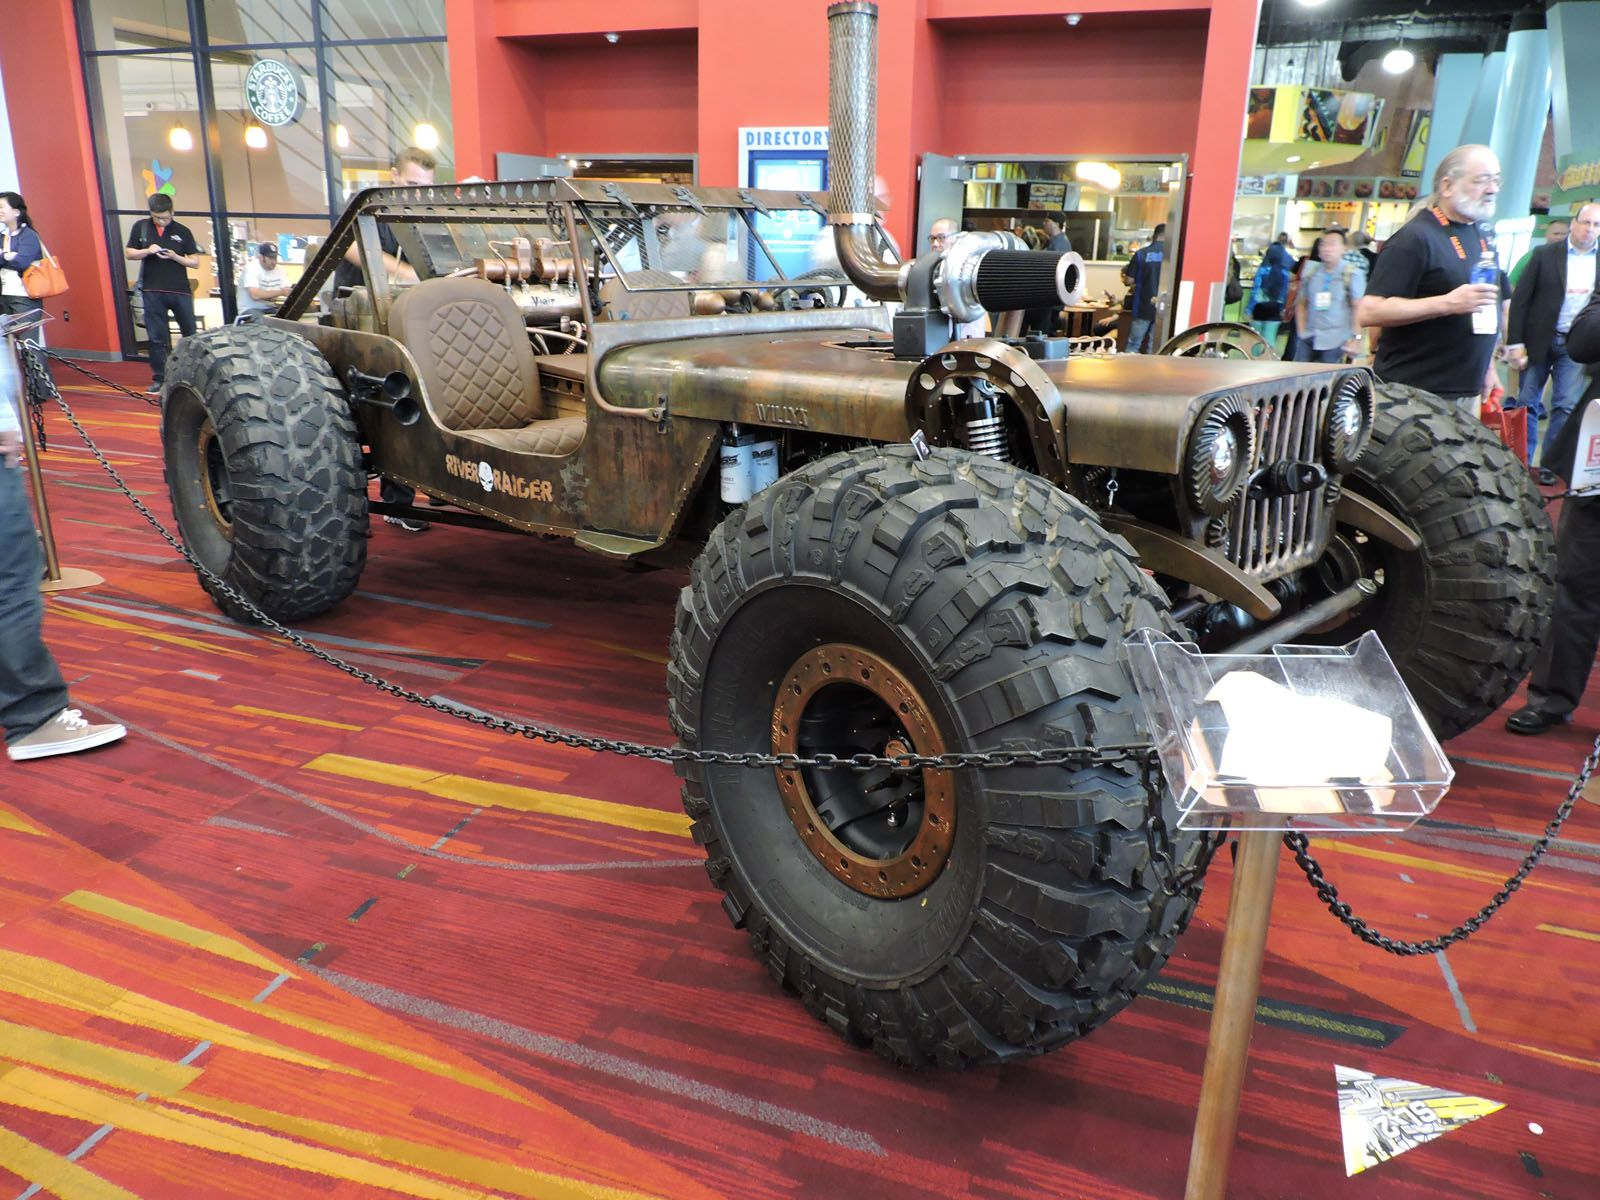 Motor'n | Top 10 SEMA Cars Ready for the End of the World